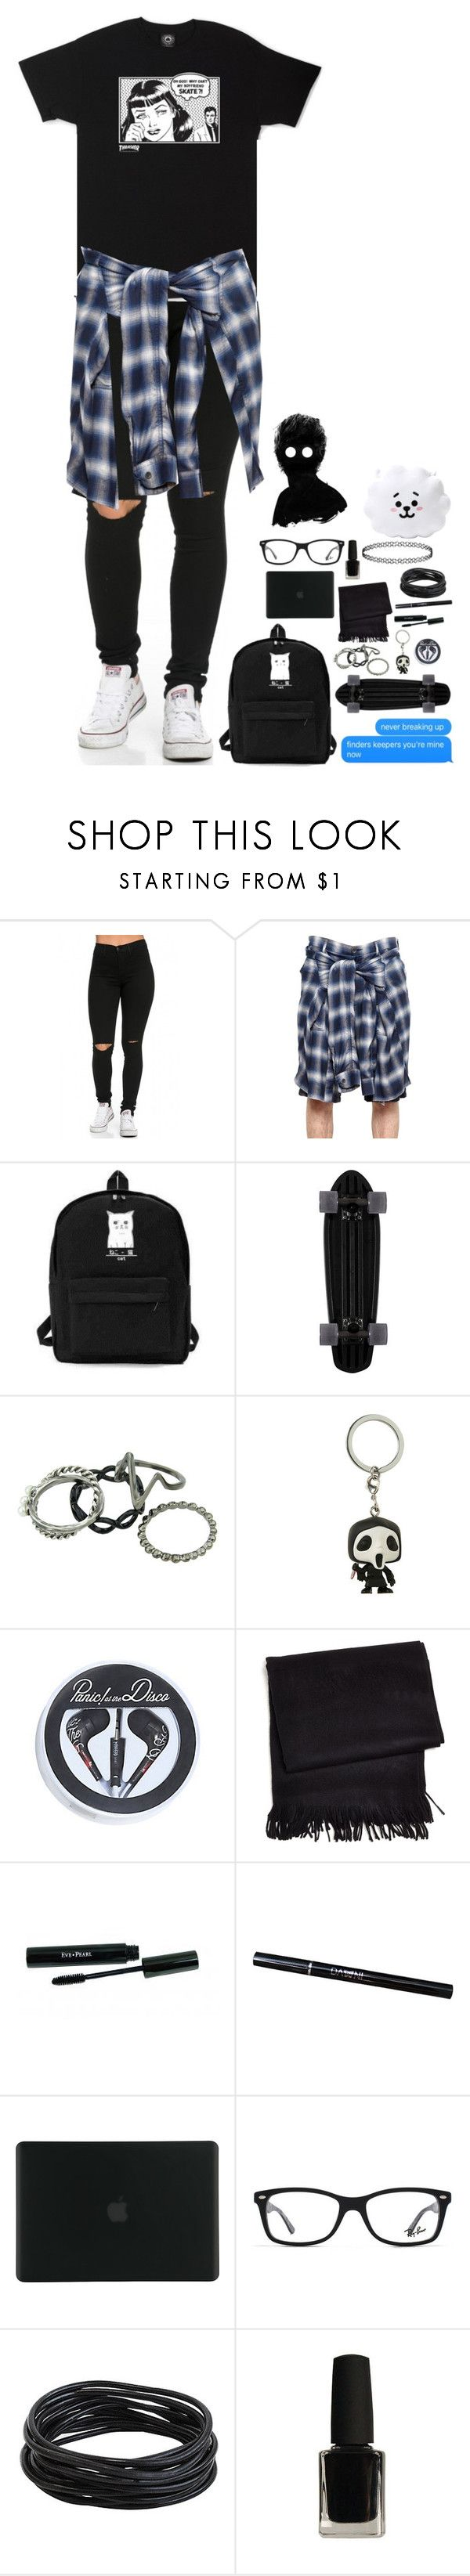 """""""Oh god why can't my boyfriend skate?"""" by xxghostlygracexx ❤ liked on Polyvore featuring Maison Mihara Yasuhiro, Funko, Hot Topic, Frette, Tucano, Ray-Ban and Pillow Perfect"""